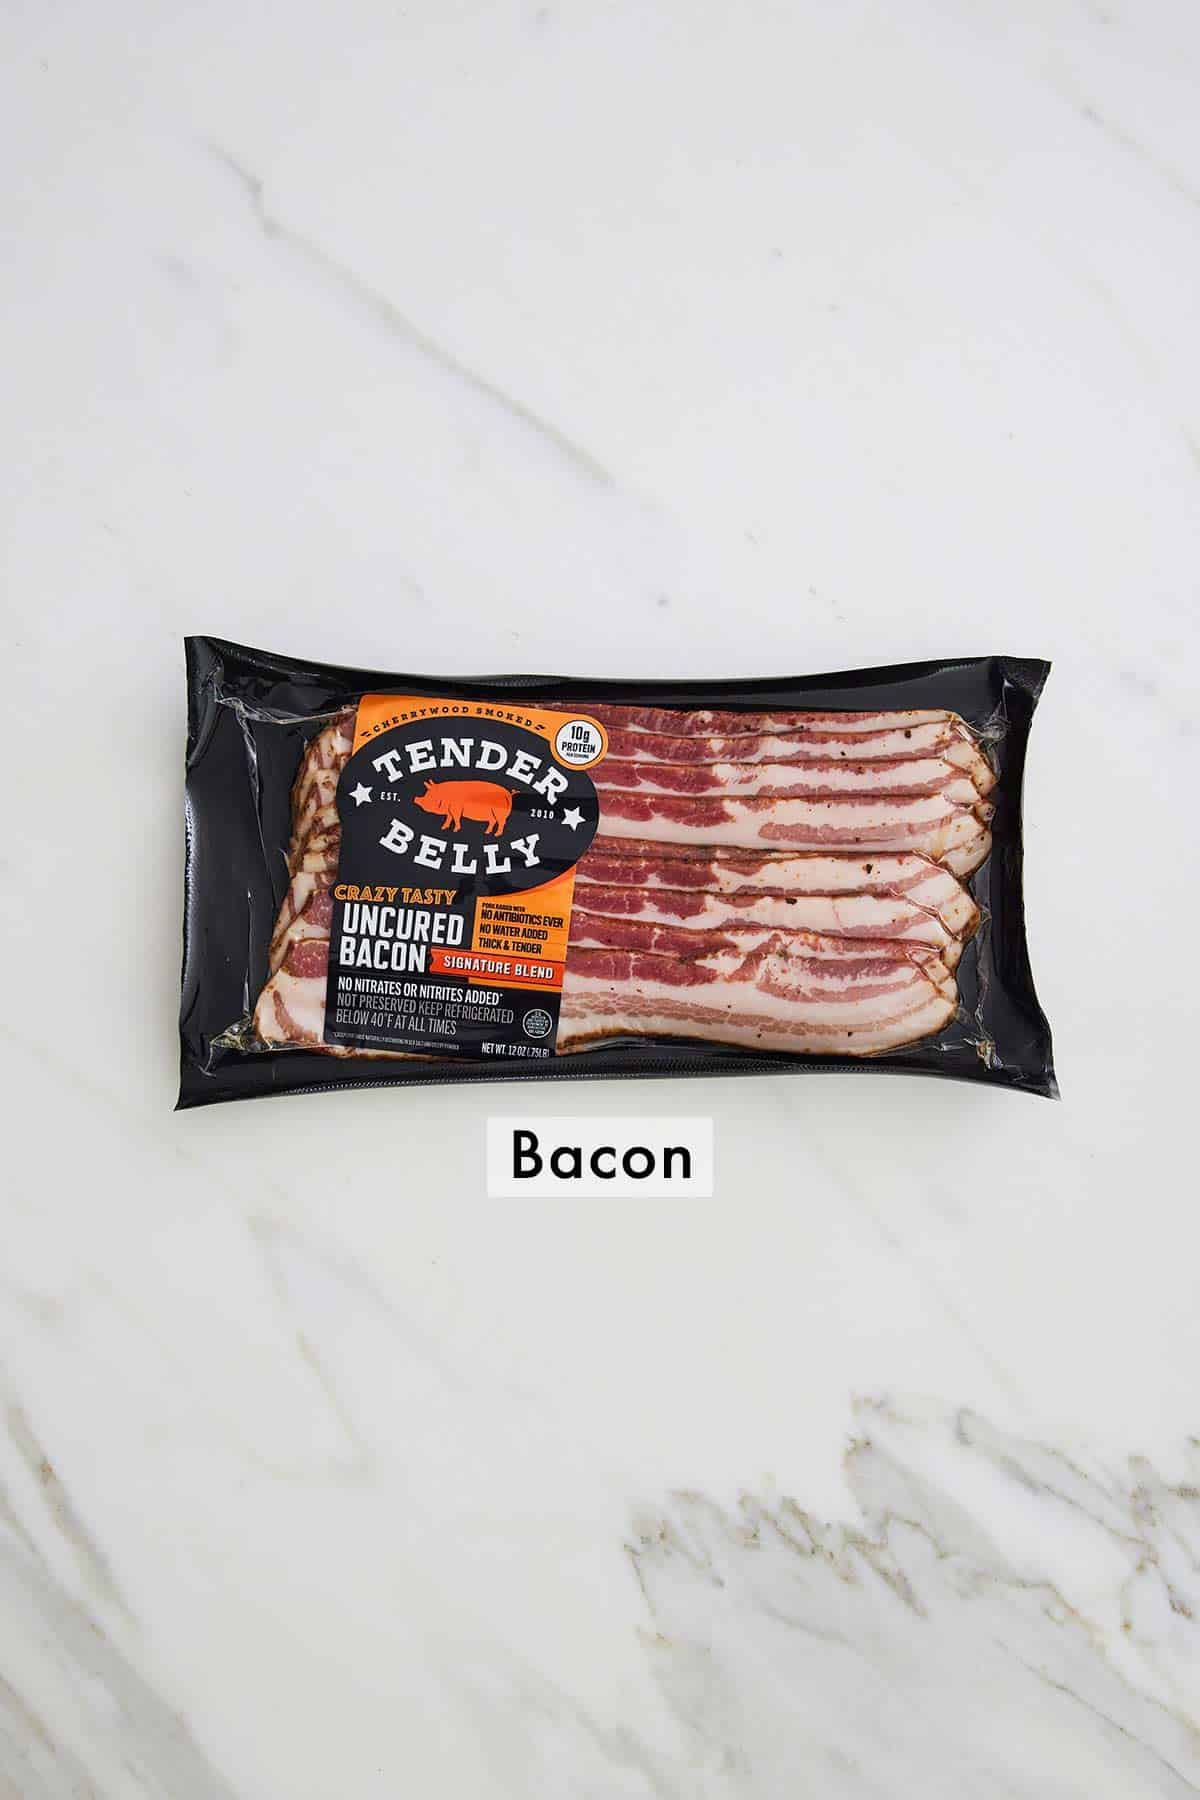 A package of thick cut bacon.